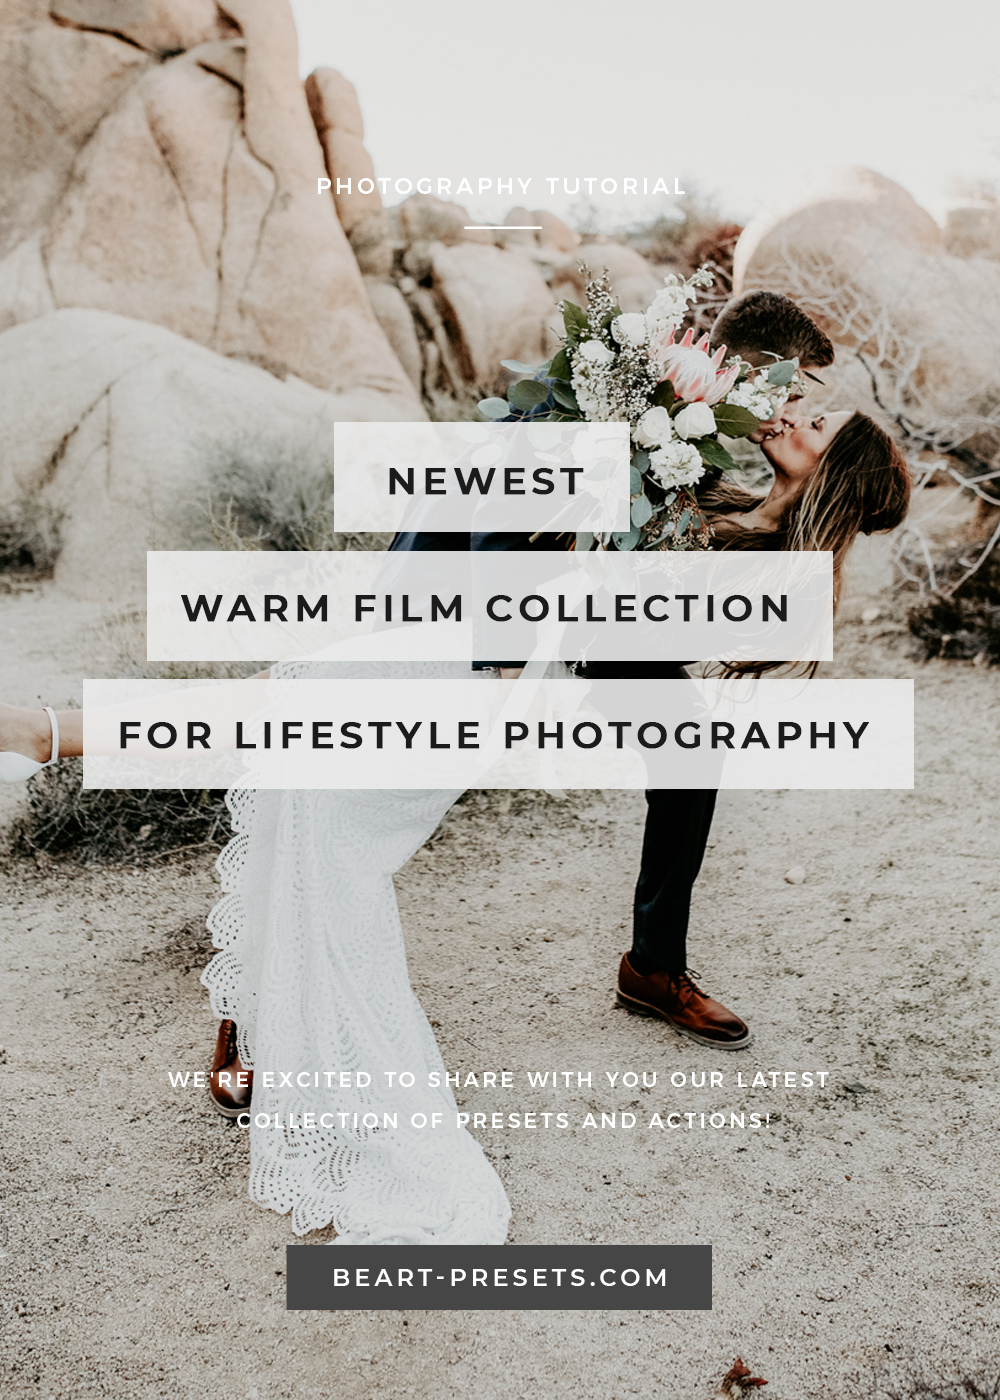 Warm Film Collection For Lifestyle Photography